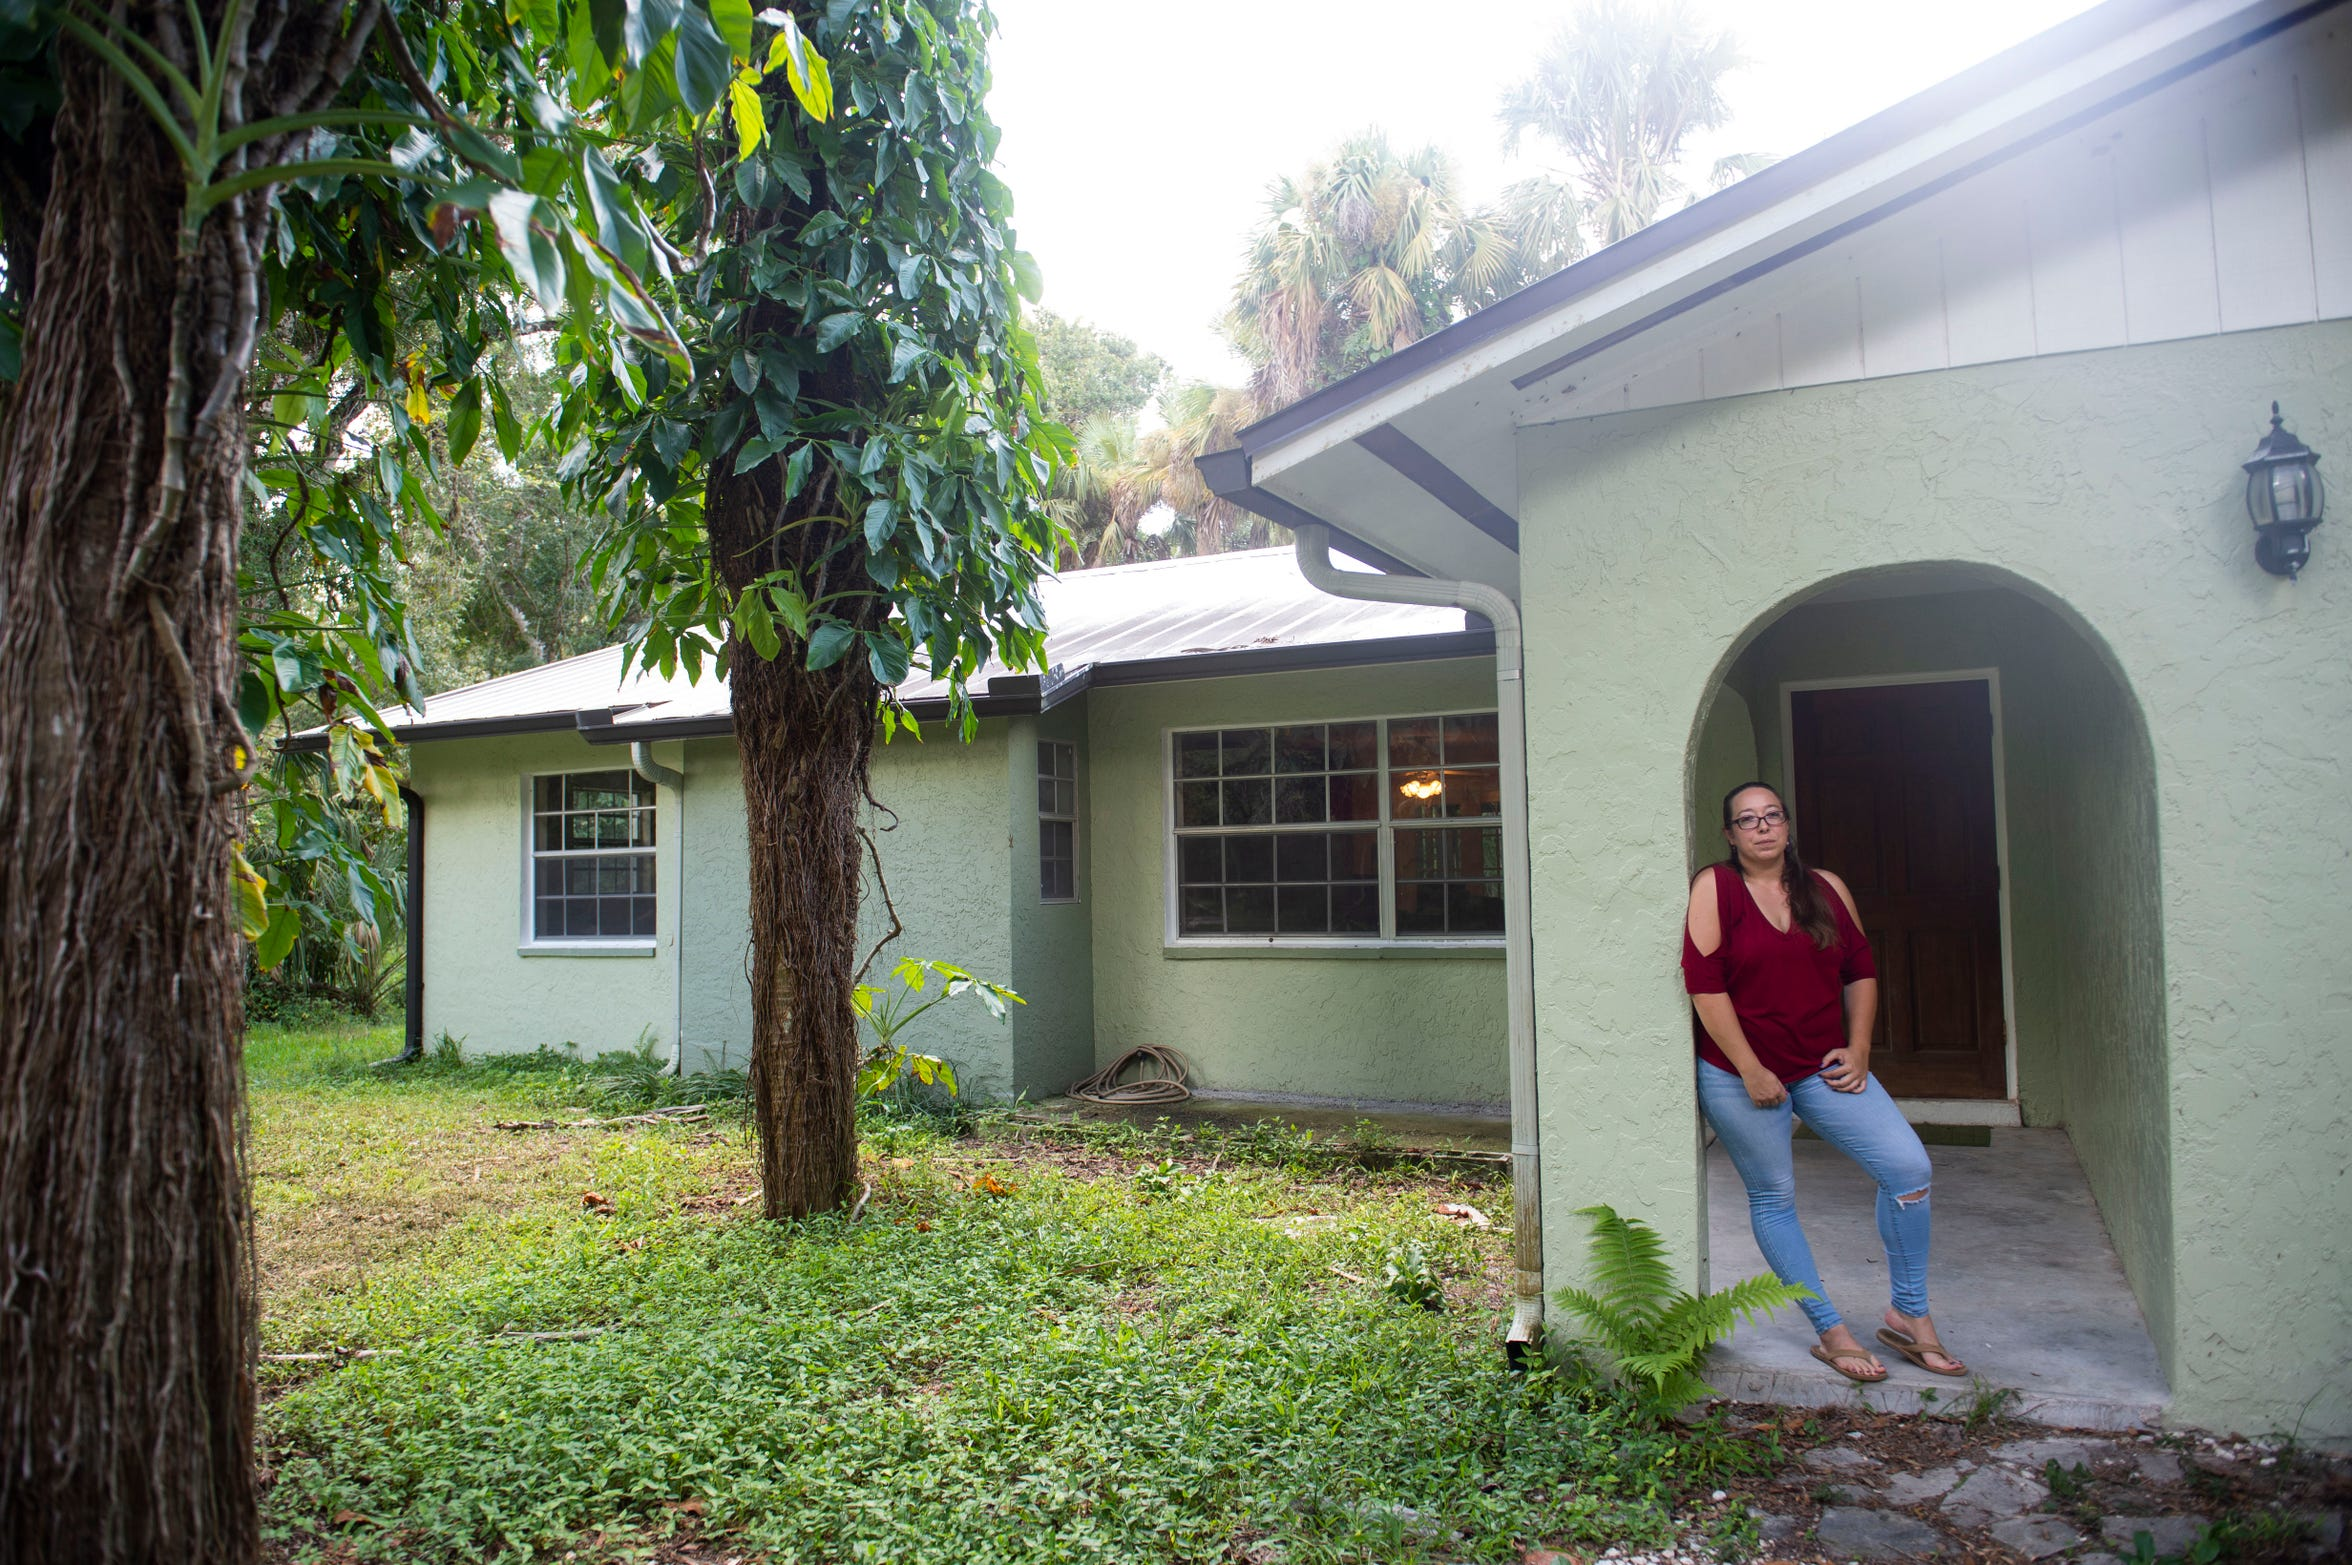 "Following Hurricane Irma in Sept. 2017, the interior of Courtney Crowley's home was covered in 11 inches of water, causing $90,000 in damage, excluding personal belongings. When Crowley and her husband were able to make their way back to their property several days after Irma's landfall, they had to jimmy a window open to enter the house, then kick the front door open. ""You could see water still on the floor. The couches were all soaked. All of my mattresses were ruined, most of my clothes, almost all of my furniture, I mean everything. We threw out everything,"" Crowley said. The Crowleys moved back into their home in May and are slowly collecting new possessions."